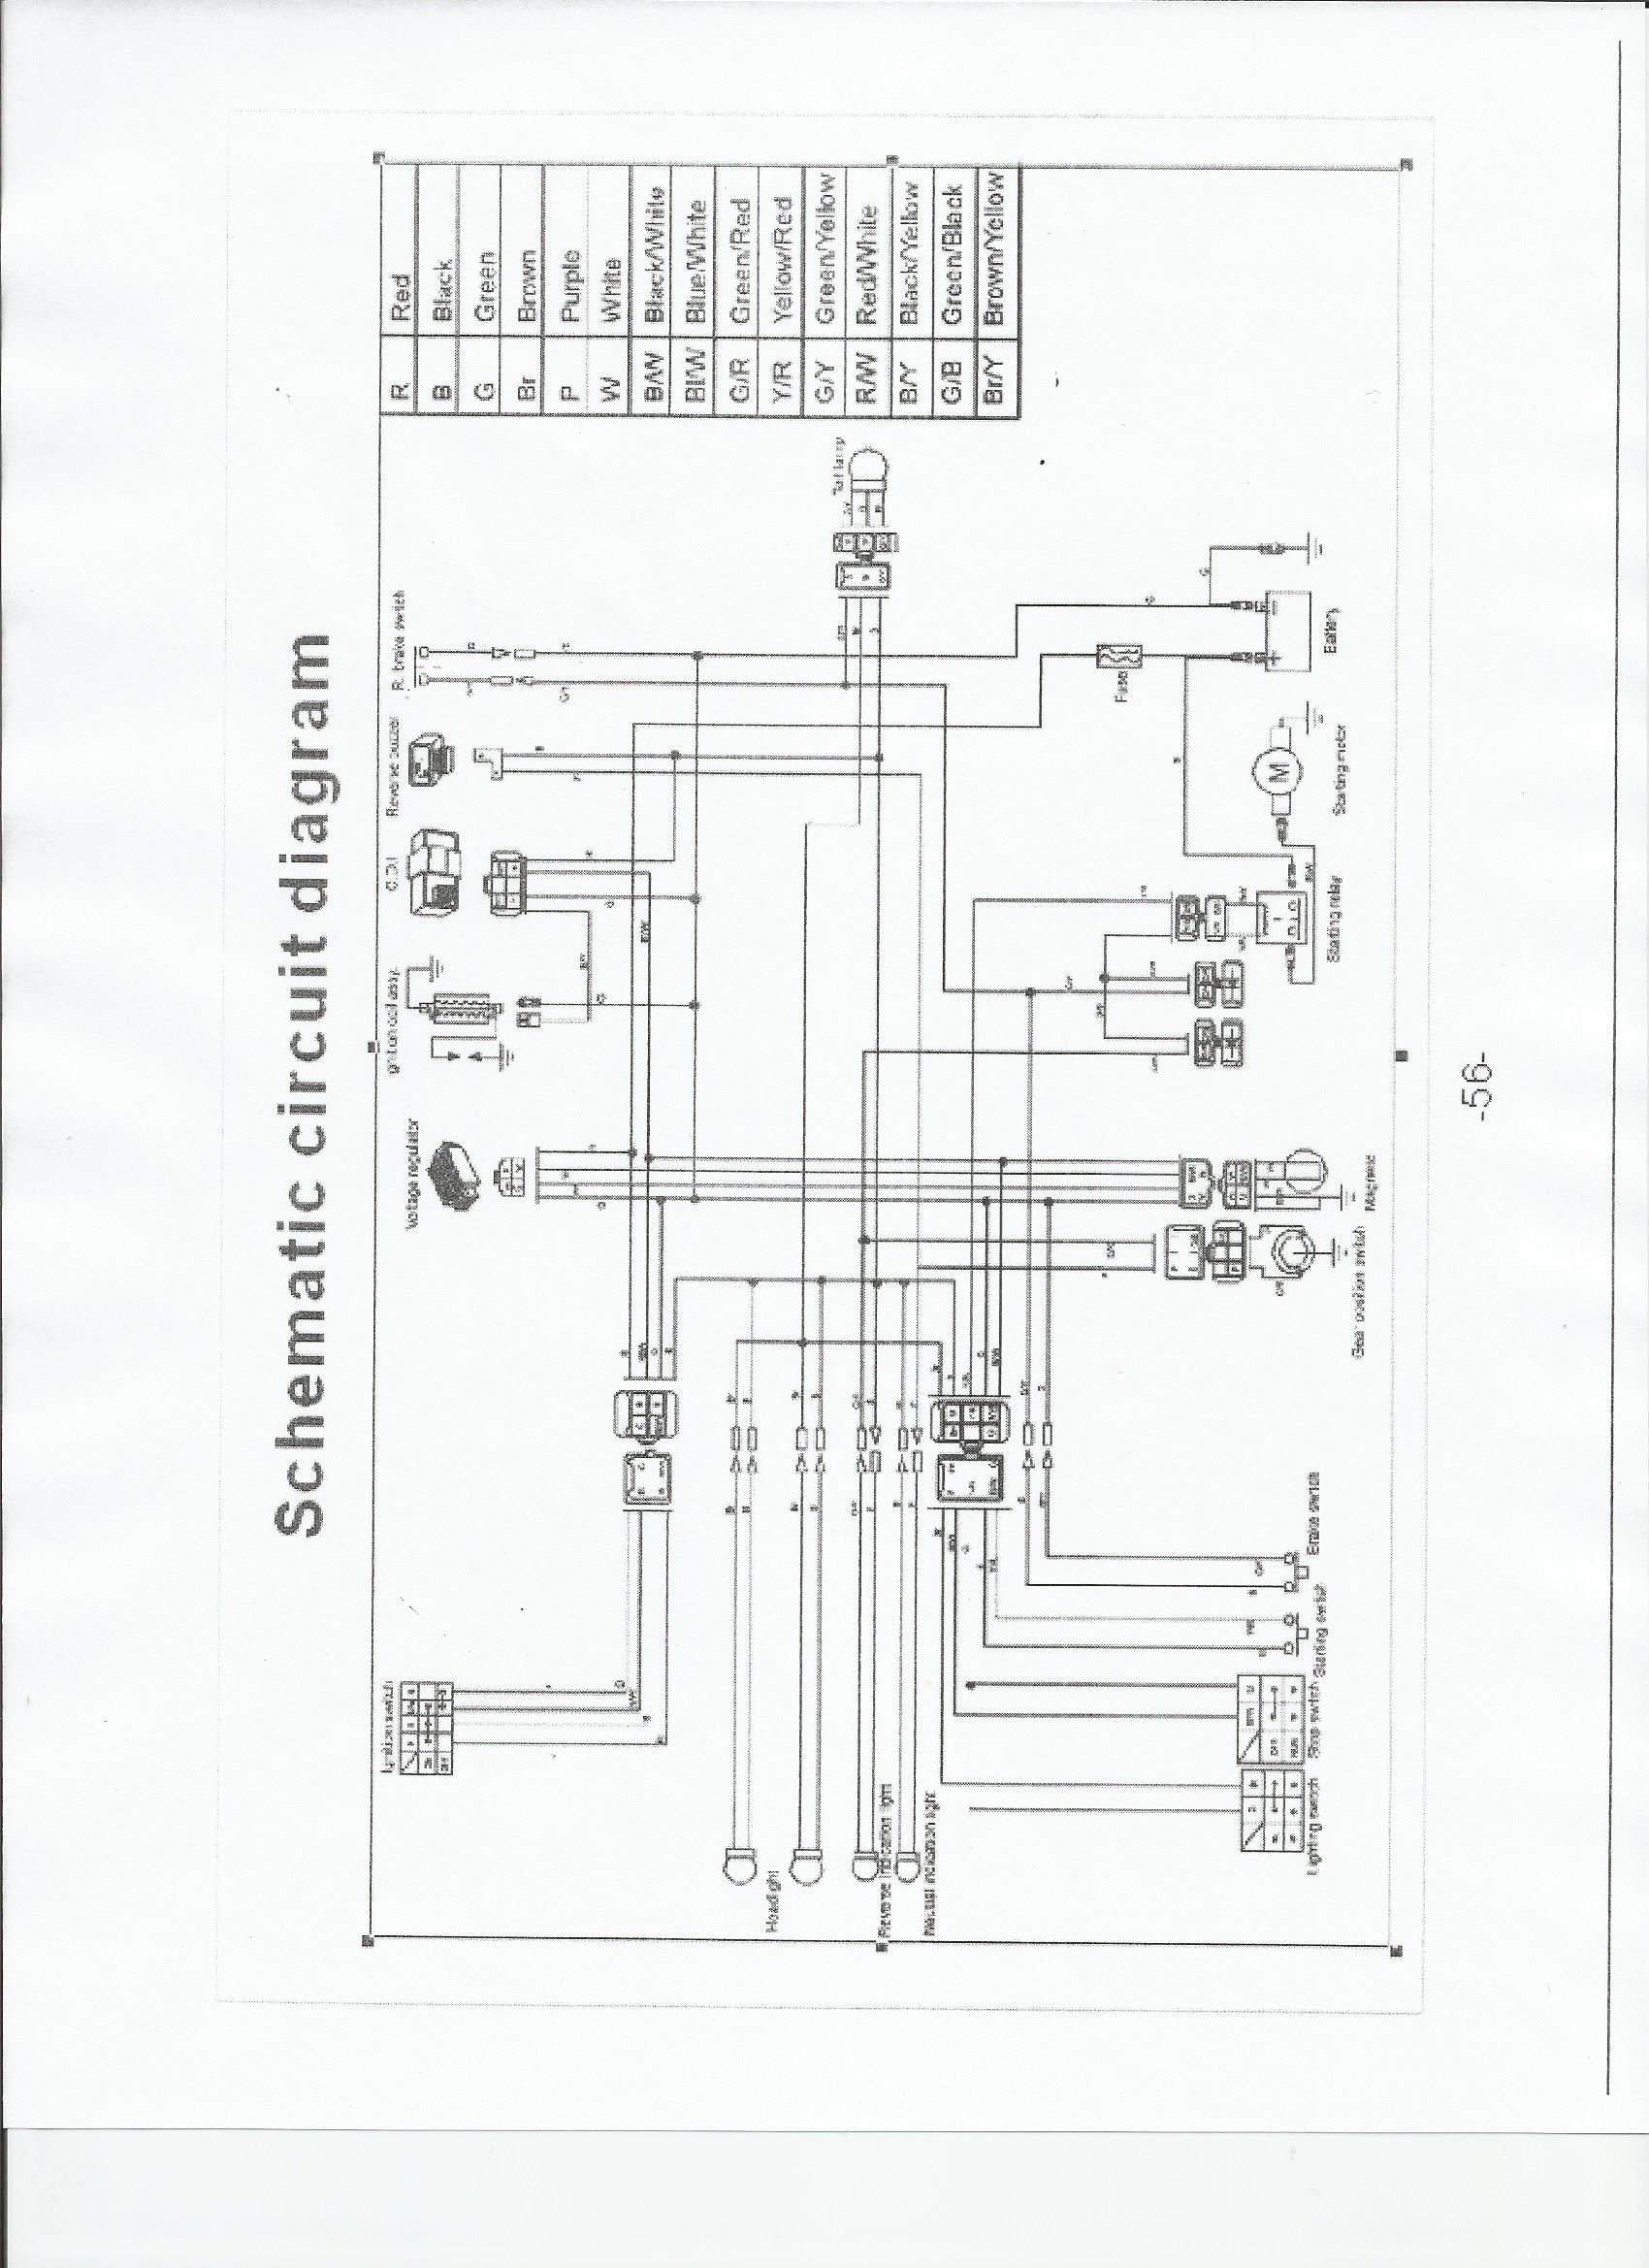 taotao mini and youth atv wiring schematic familygokarts support rh support familygokarts com Need a Picture of a 110 ATV Wiring Diagram John Deere 110 Wiring Diagram